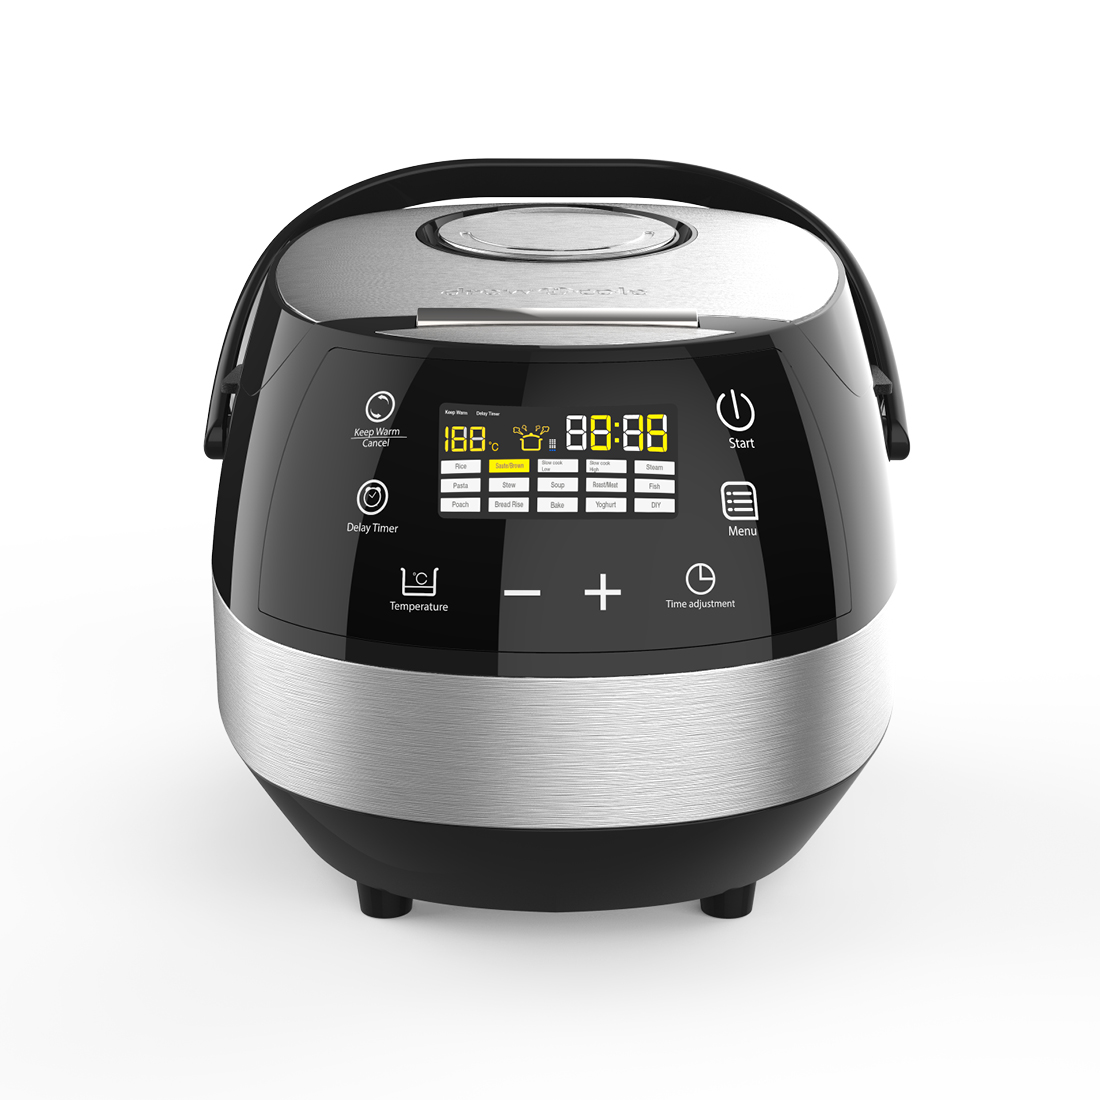 An image of CleverChef Intelligent Multicooker